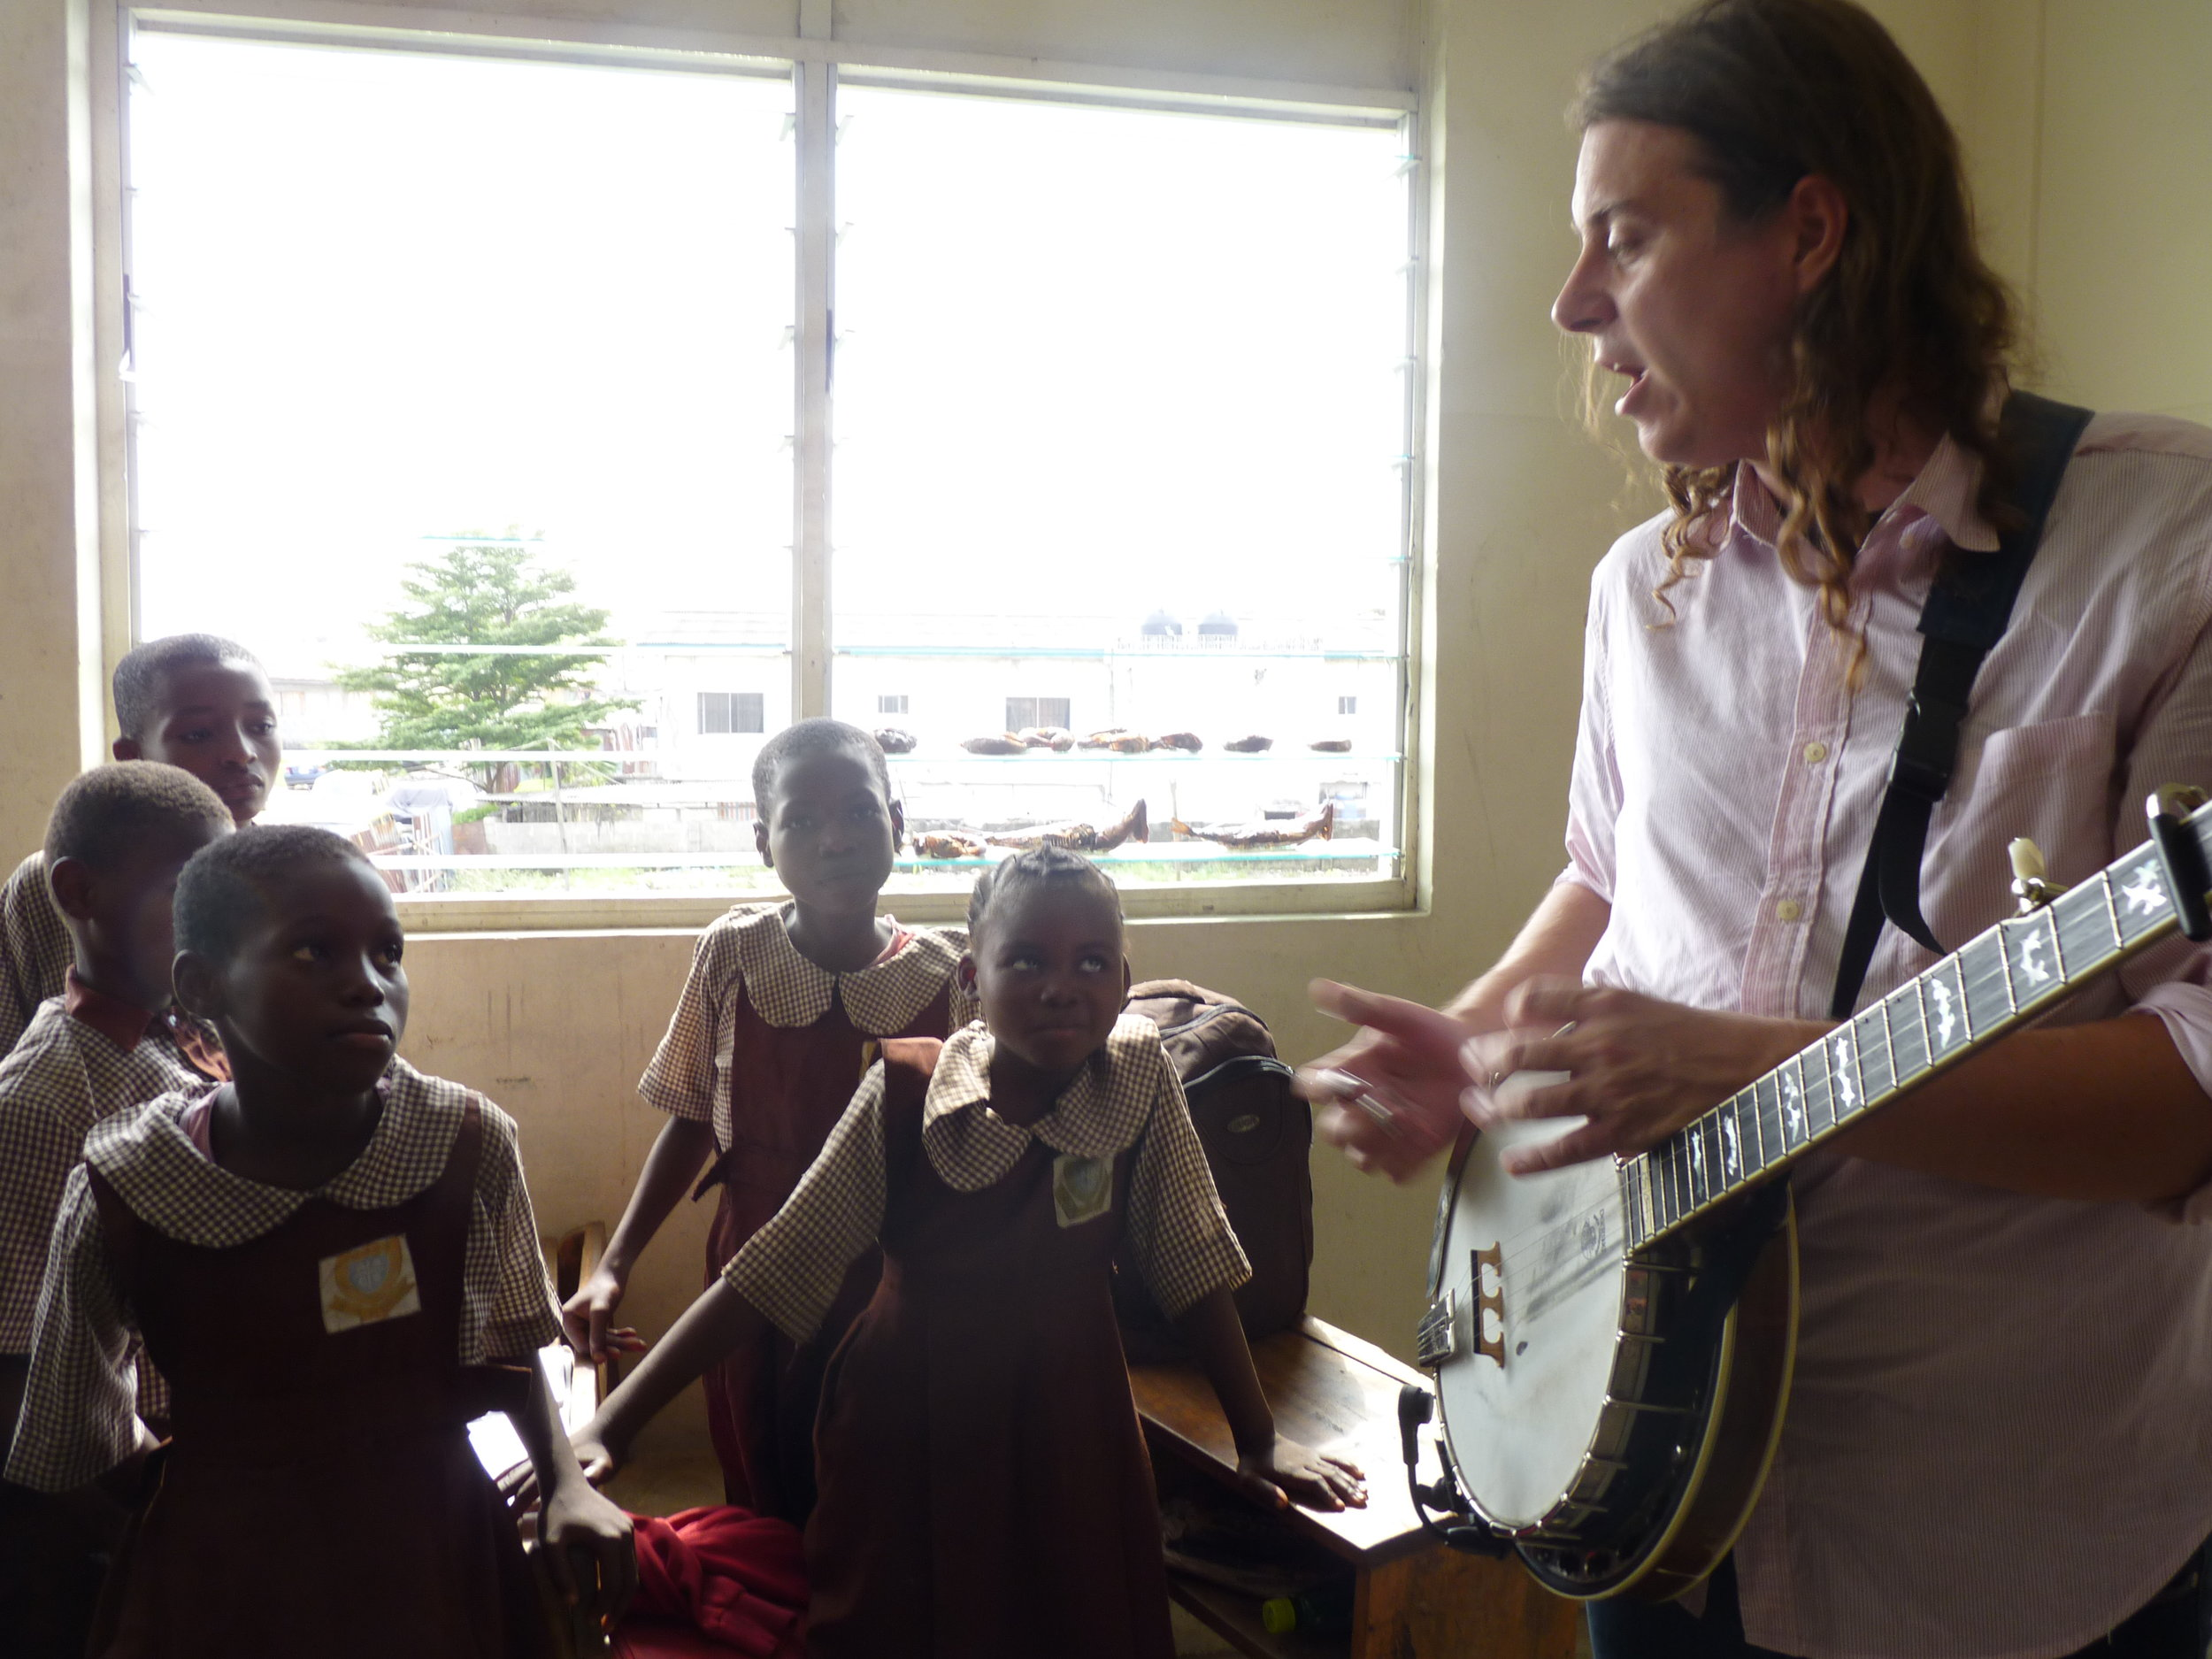 Sometimes the band breaks the classes into smaller groups, bringing them back together in for collaborative sessions